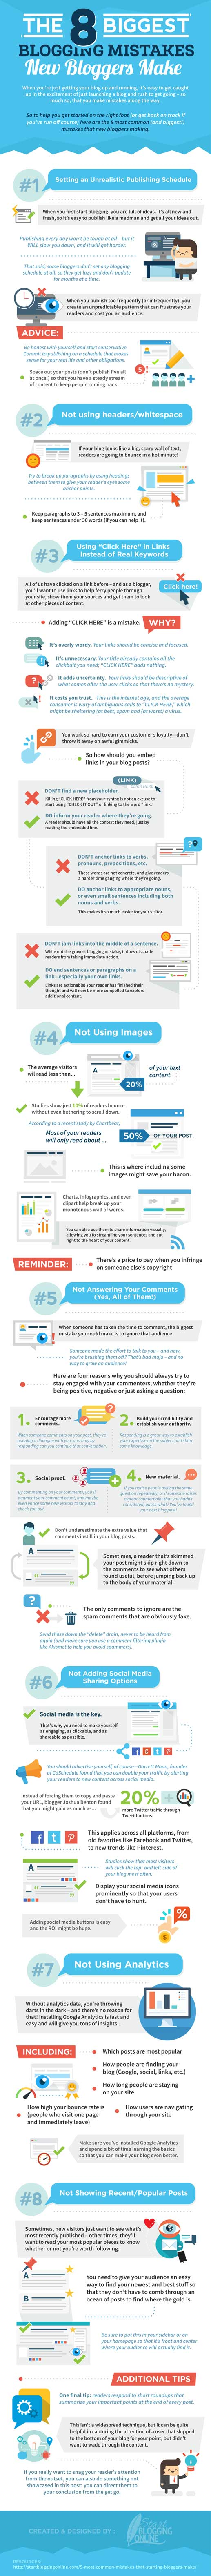 Blog mistakes infographic